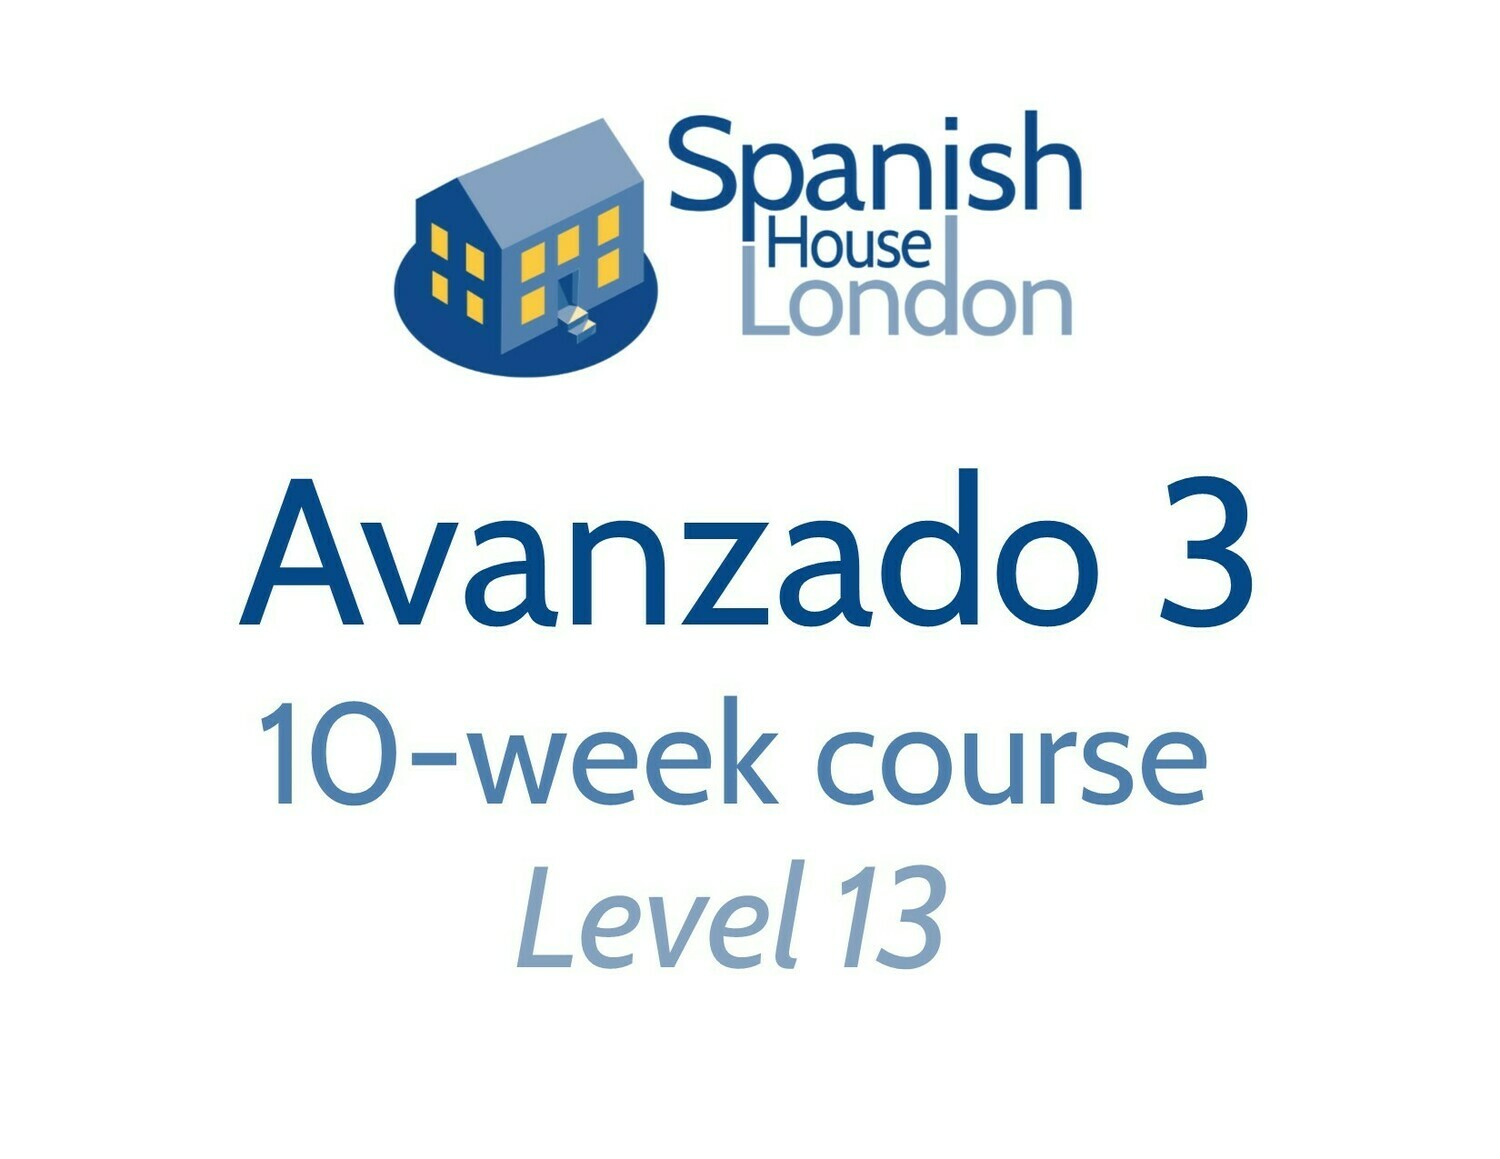 Avanzado 3 Course starting on 11th February at 7.30pm in Clapham North